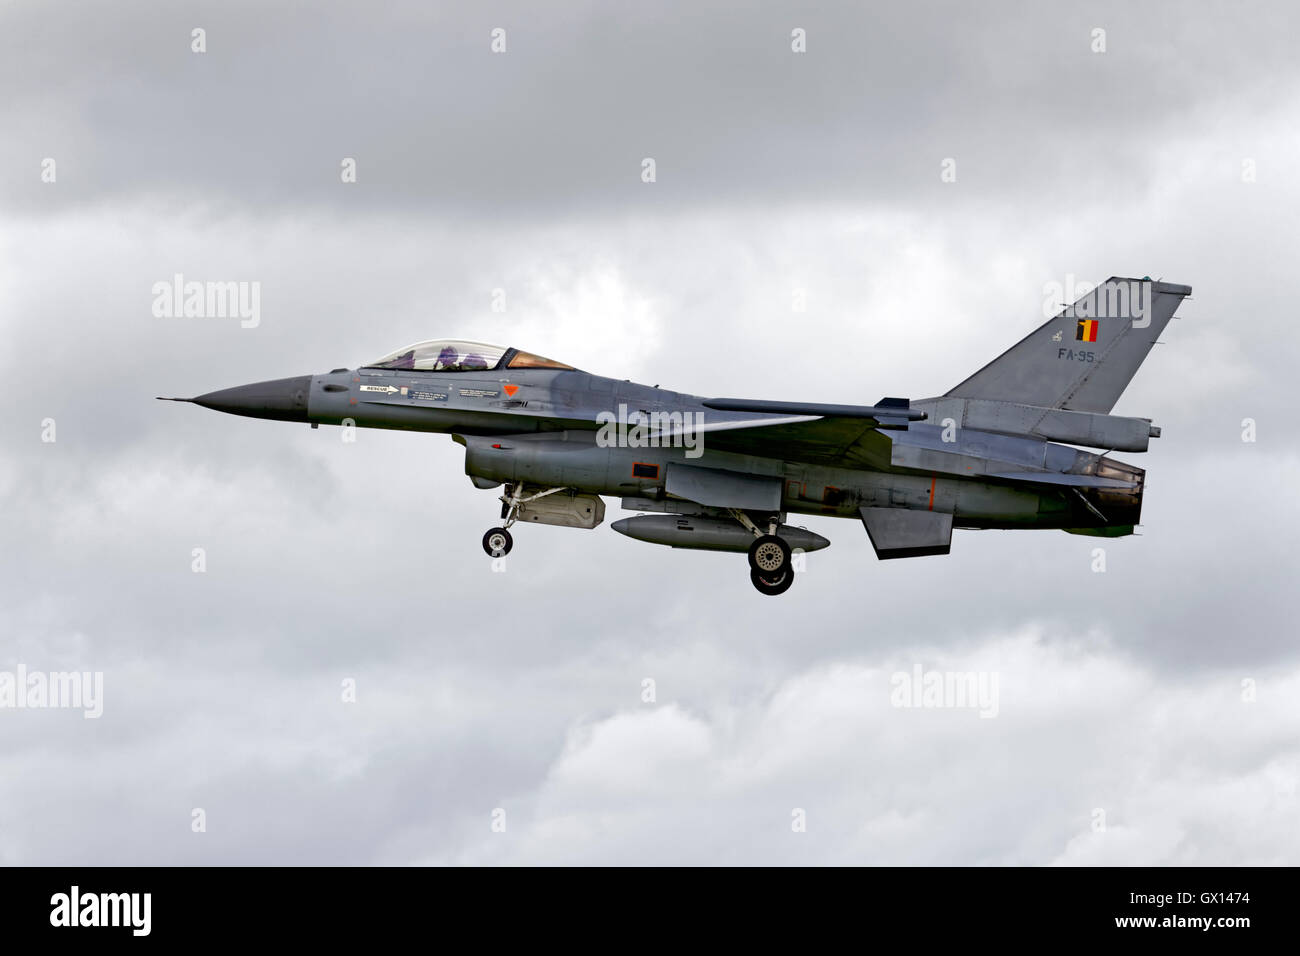 A Belgian Air Component General Dynamics F-16AM, FA-95, on finals to land at the RNAS Yeovilton International Air - Stock Image